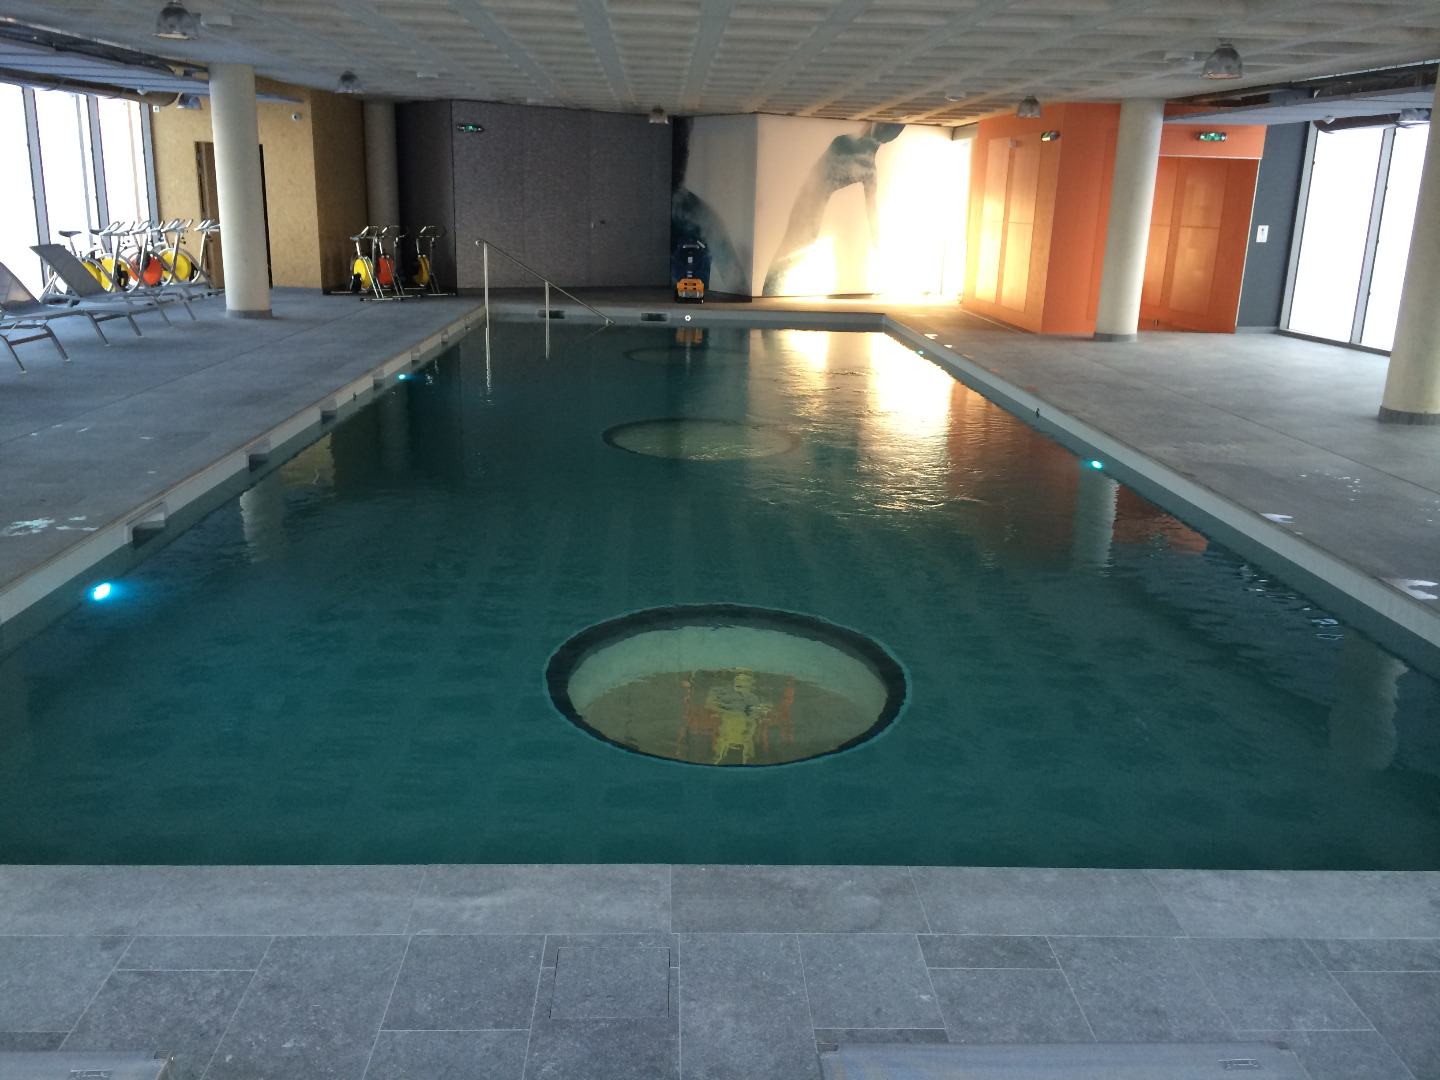 Piscine traditionnelle en béton